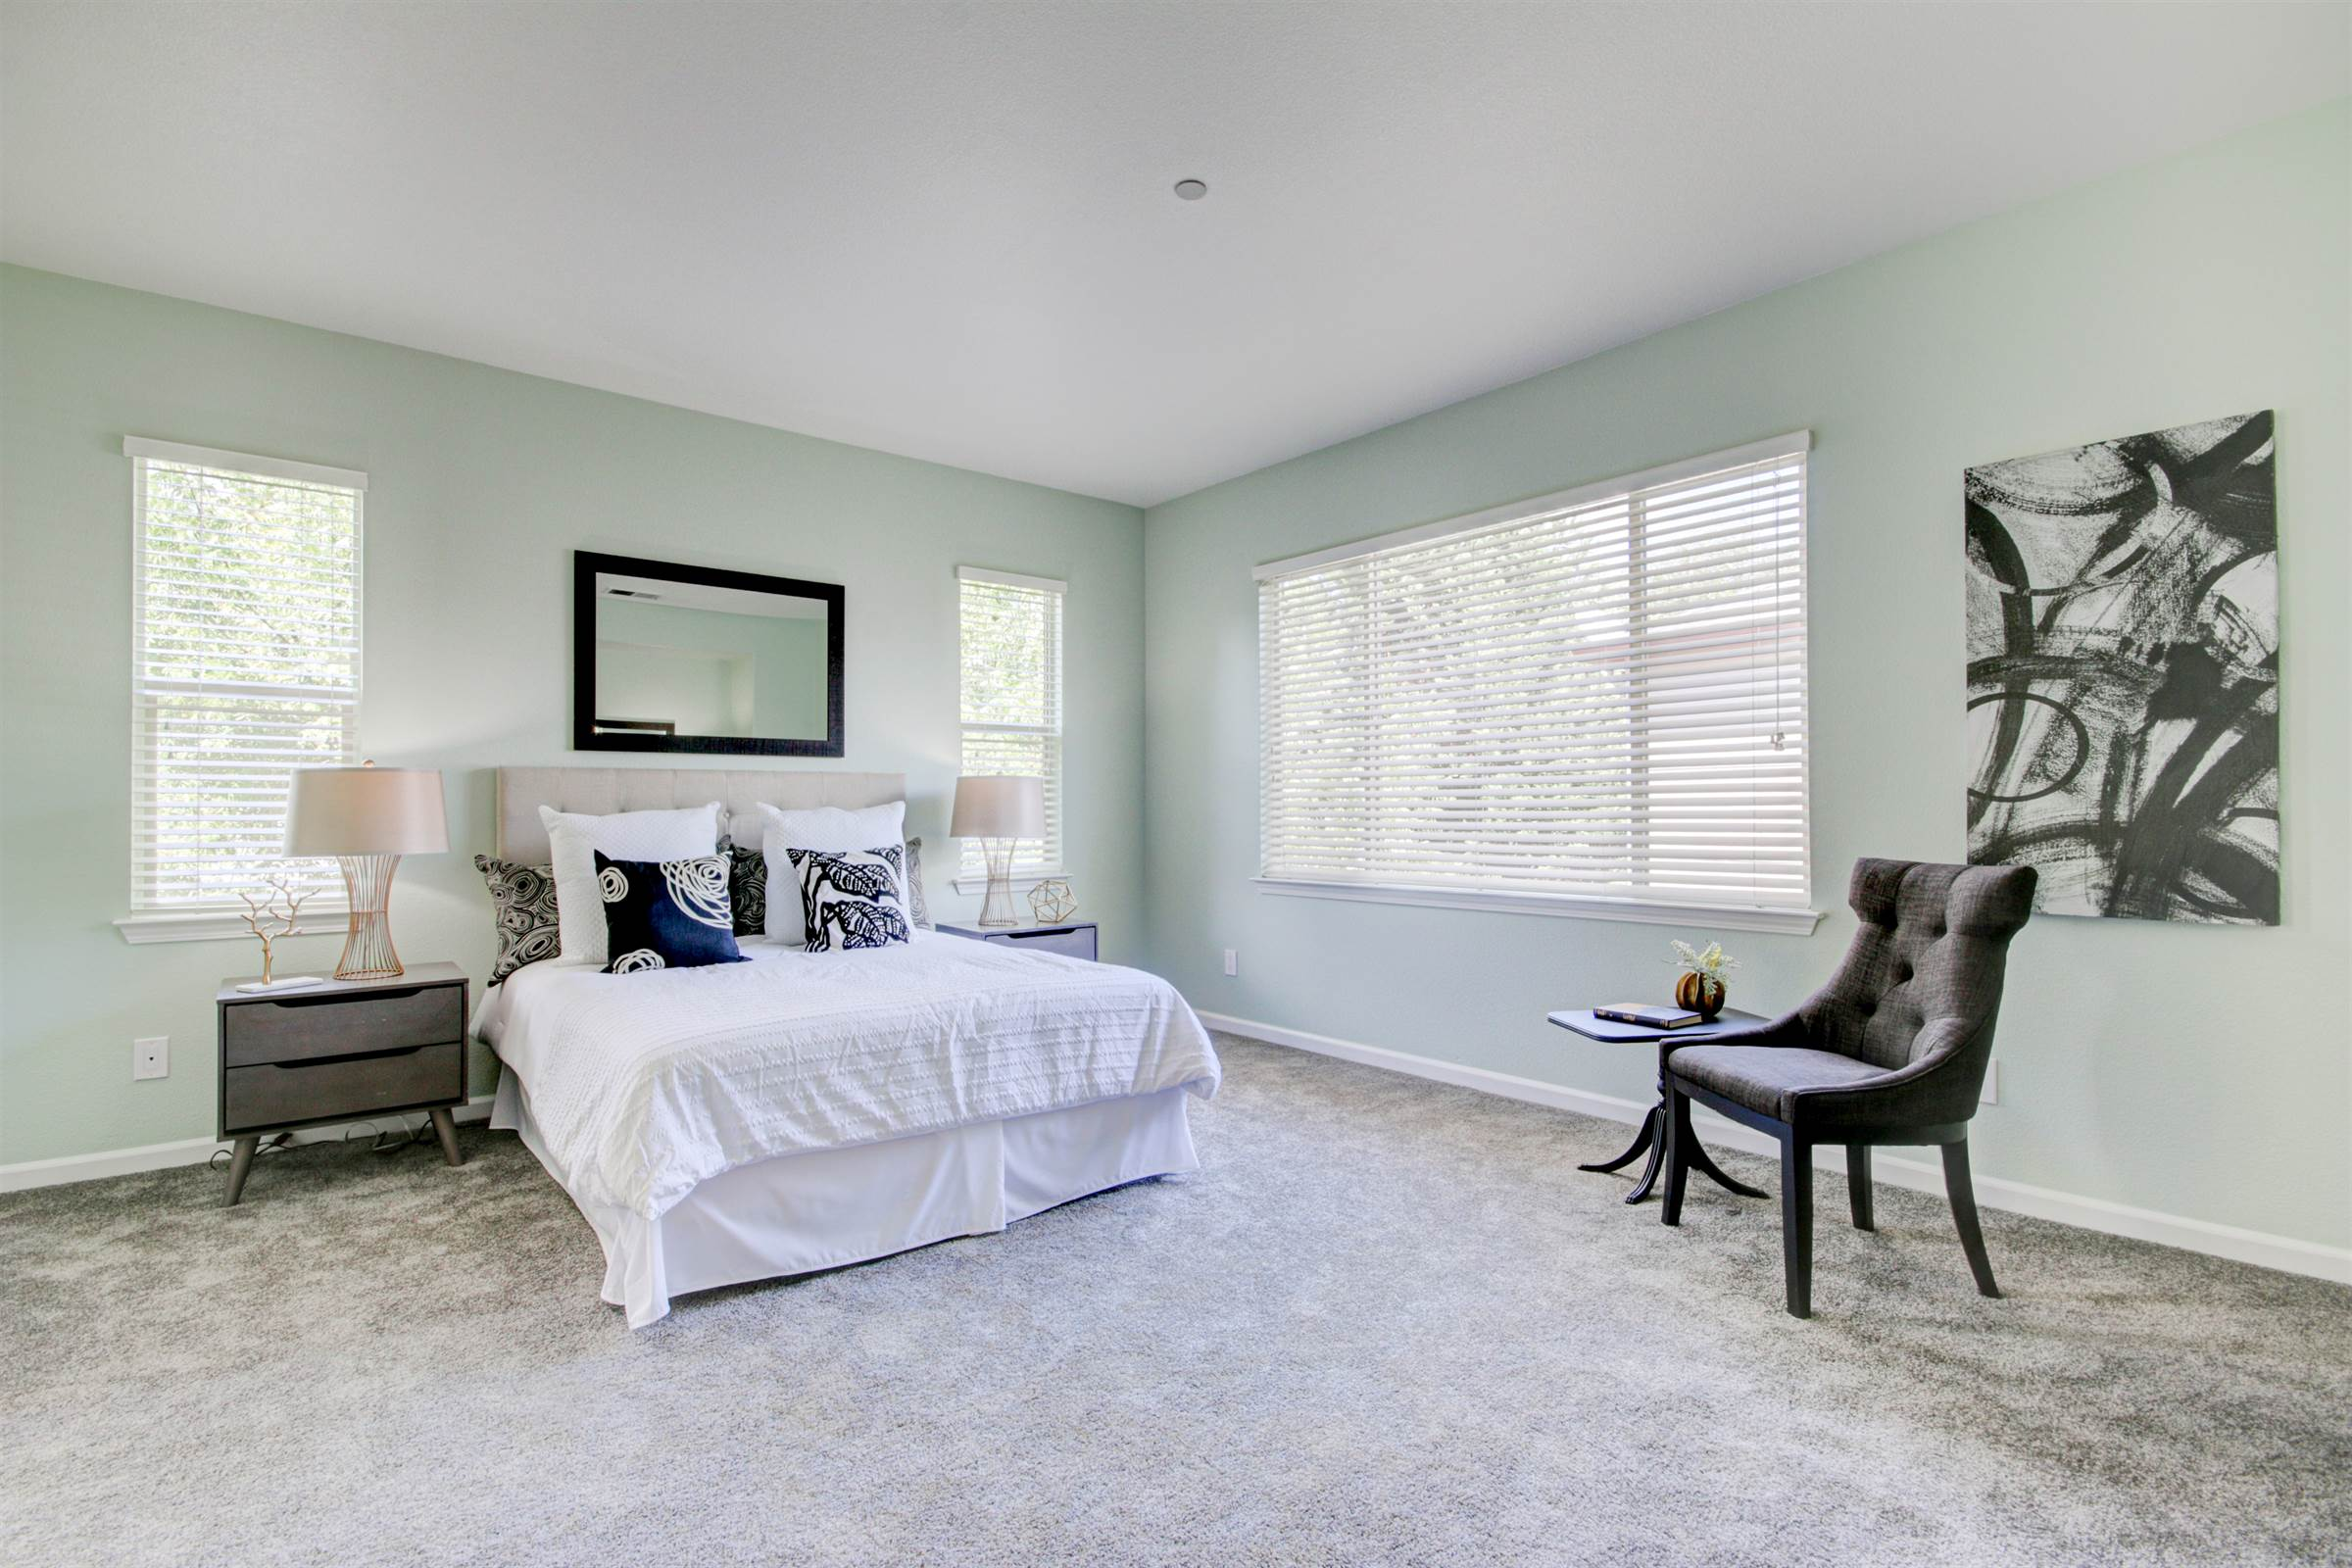 4627 Sorrento Way, Santa Rosa, CA 95409